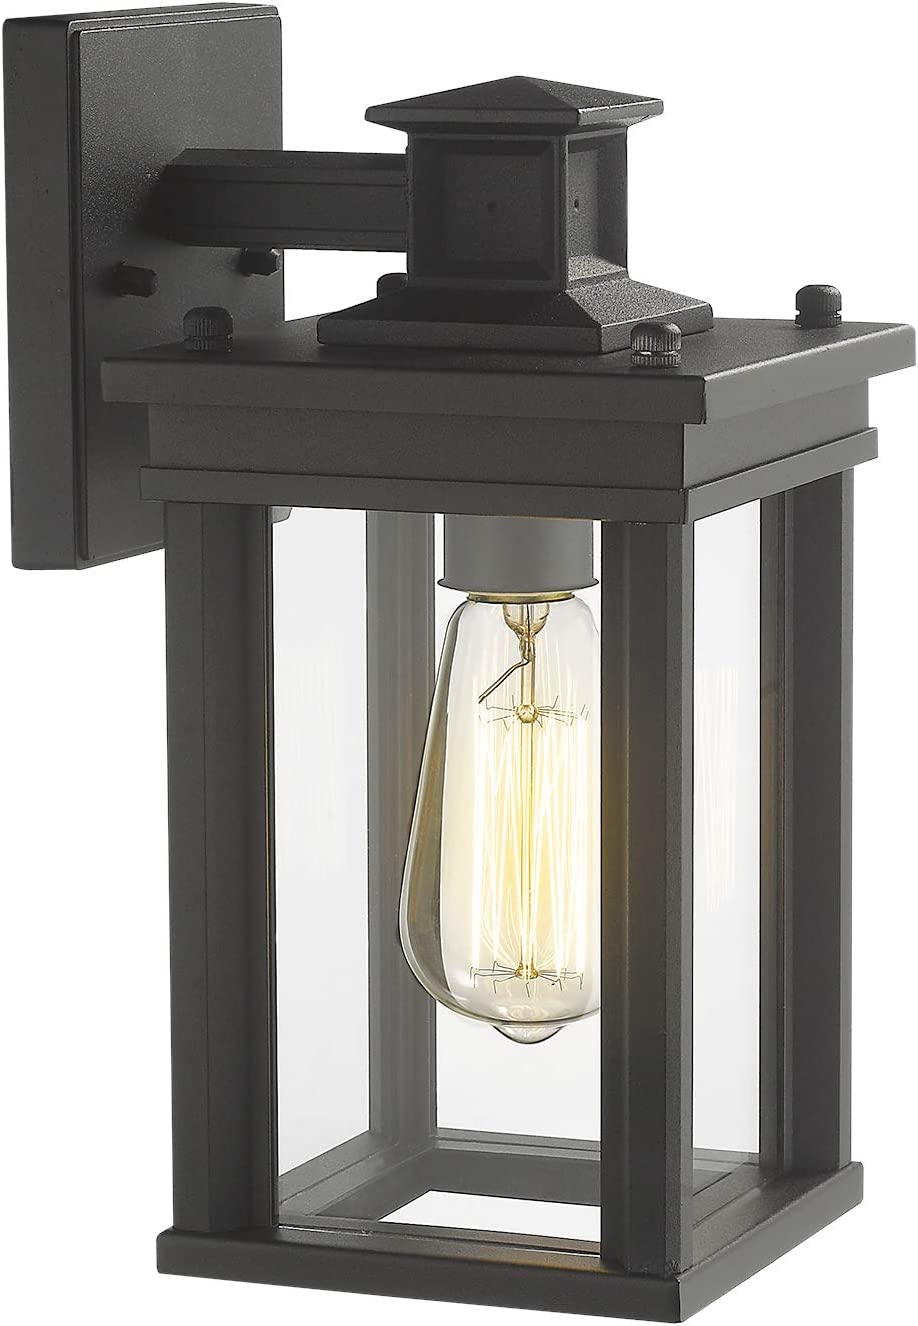 Zeyu Outdoor Porch Light Exterior Wall Sconce Lantern For Hallway Patio Black Finish With Clear Glass Shade 02a30w Bk Amazon Com